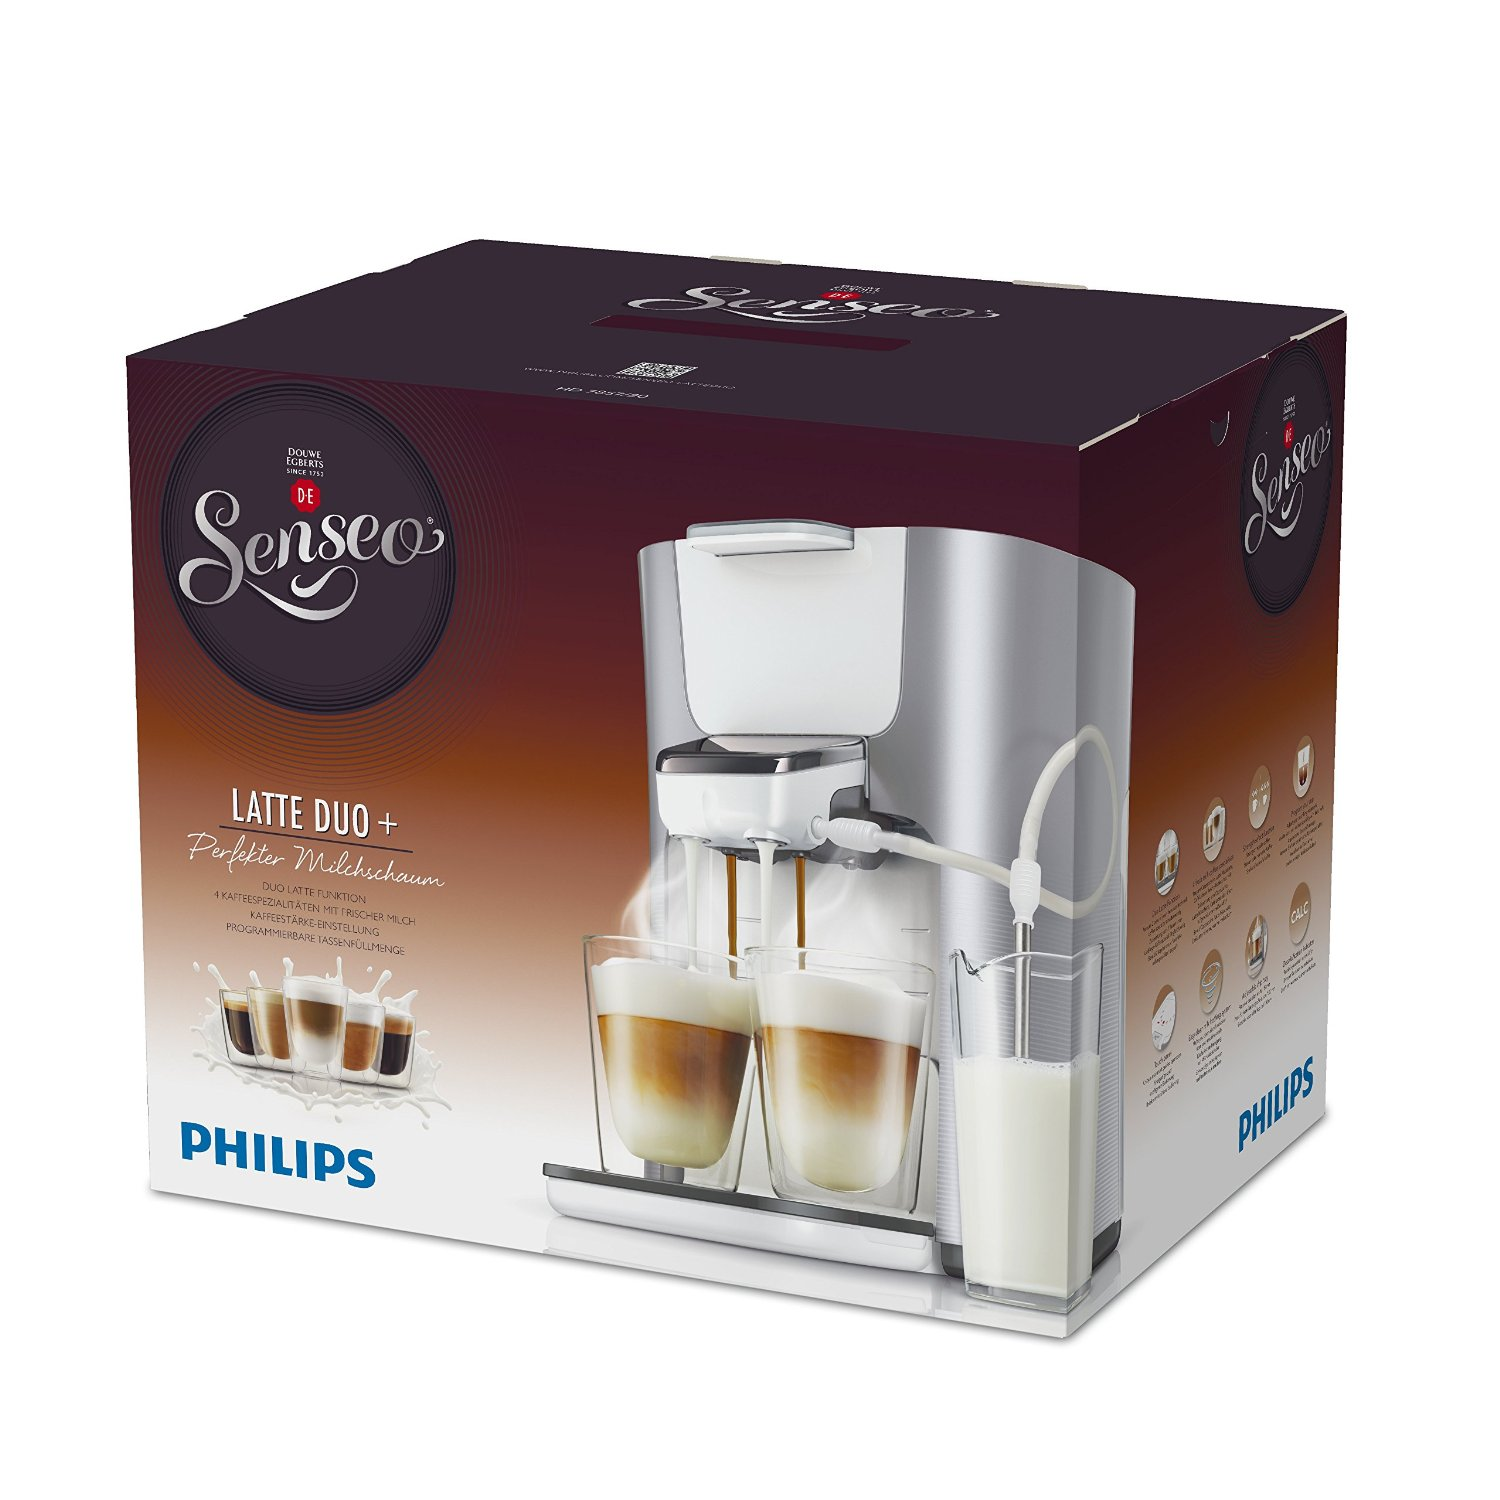 Senseo Kaffeemaschine Büro Philips Senseo Hd7857 20 Latte Duo Kaffeepadmaschine In